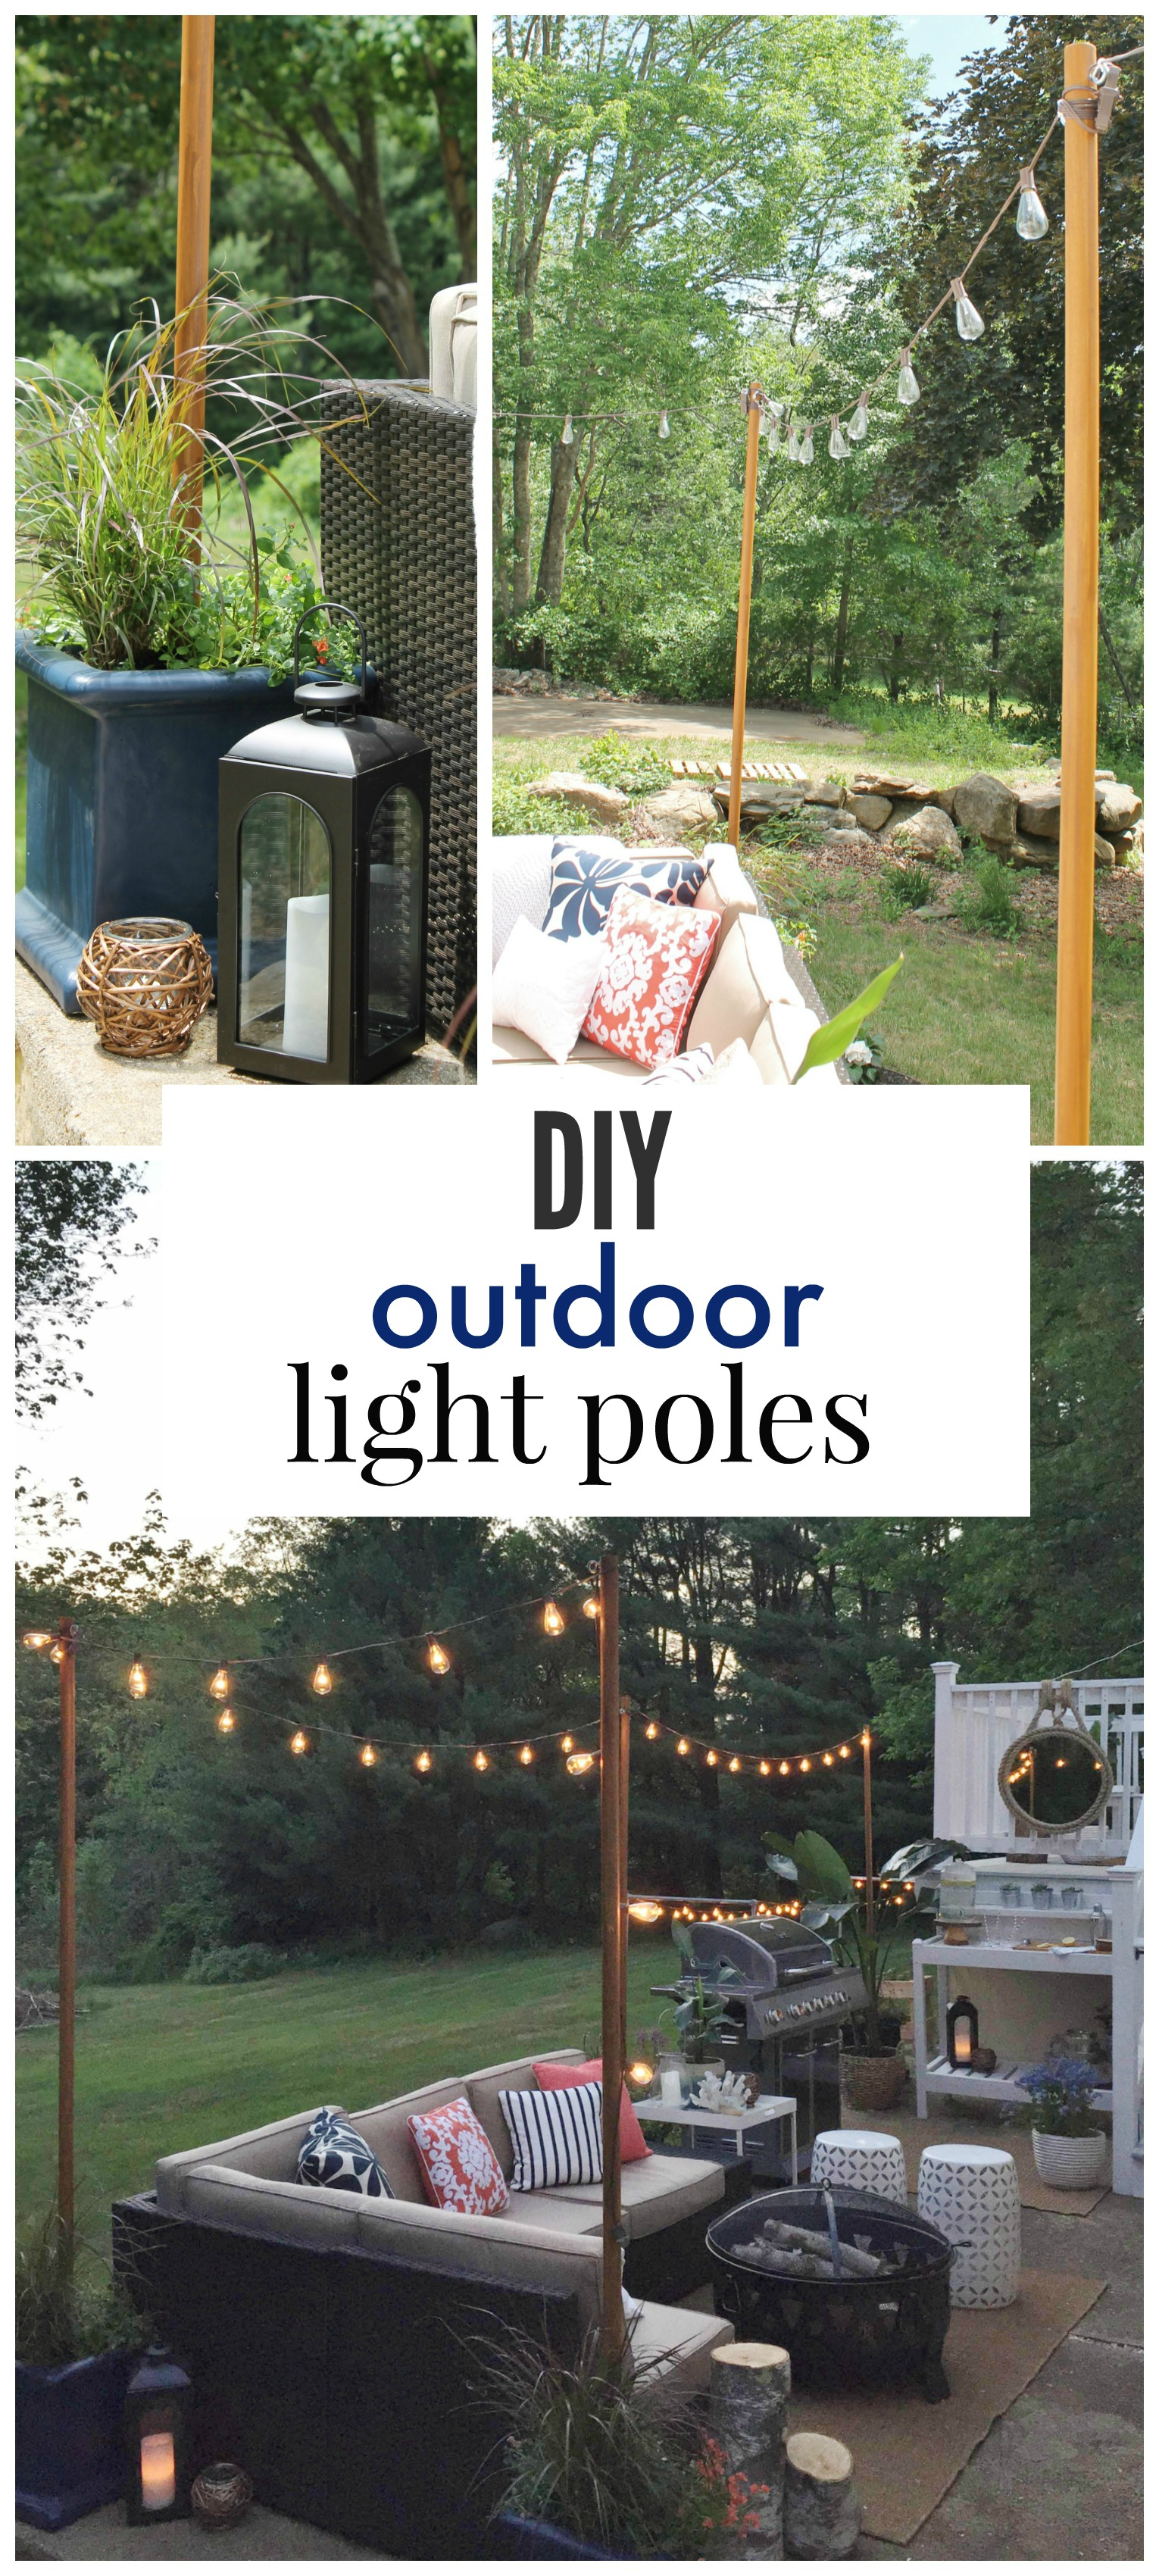 Diy outdoor light poles city farmhouse diy outdoor light poles everthing you need for outdoor lighting from lowes mozeypictures Images